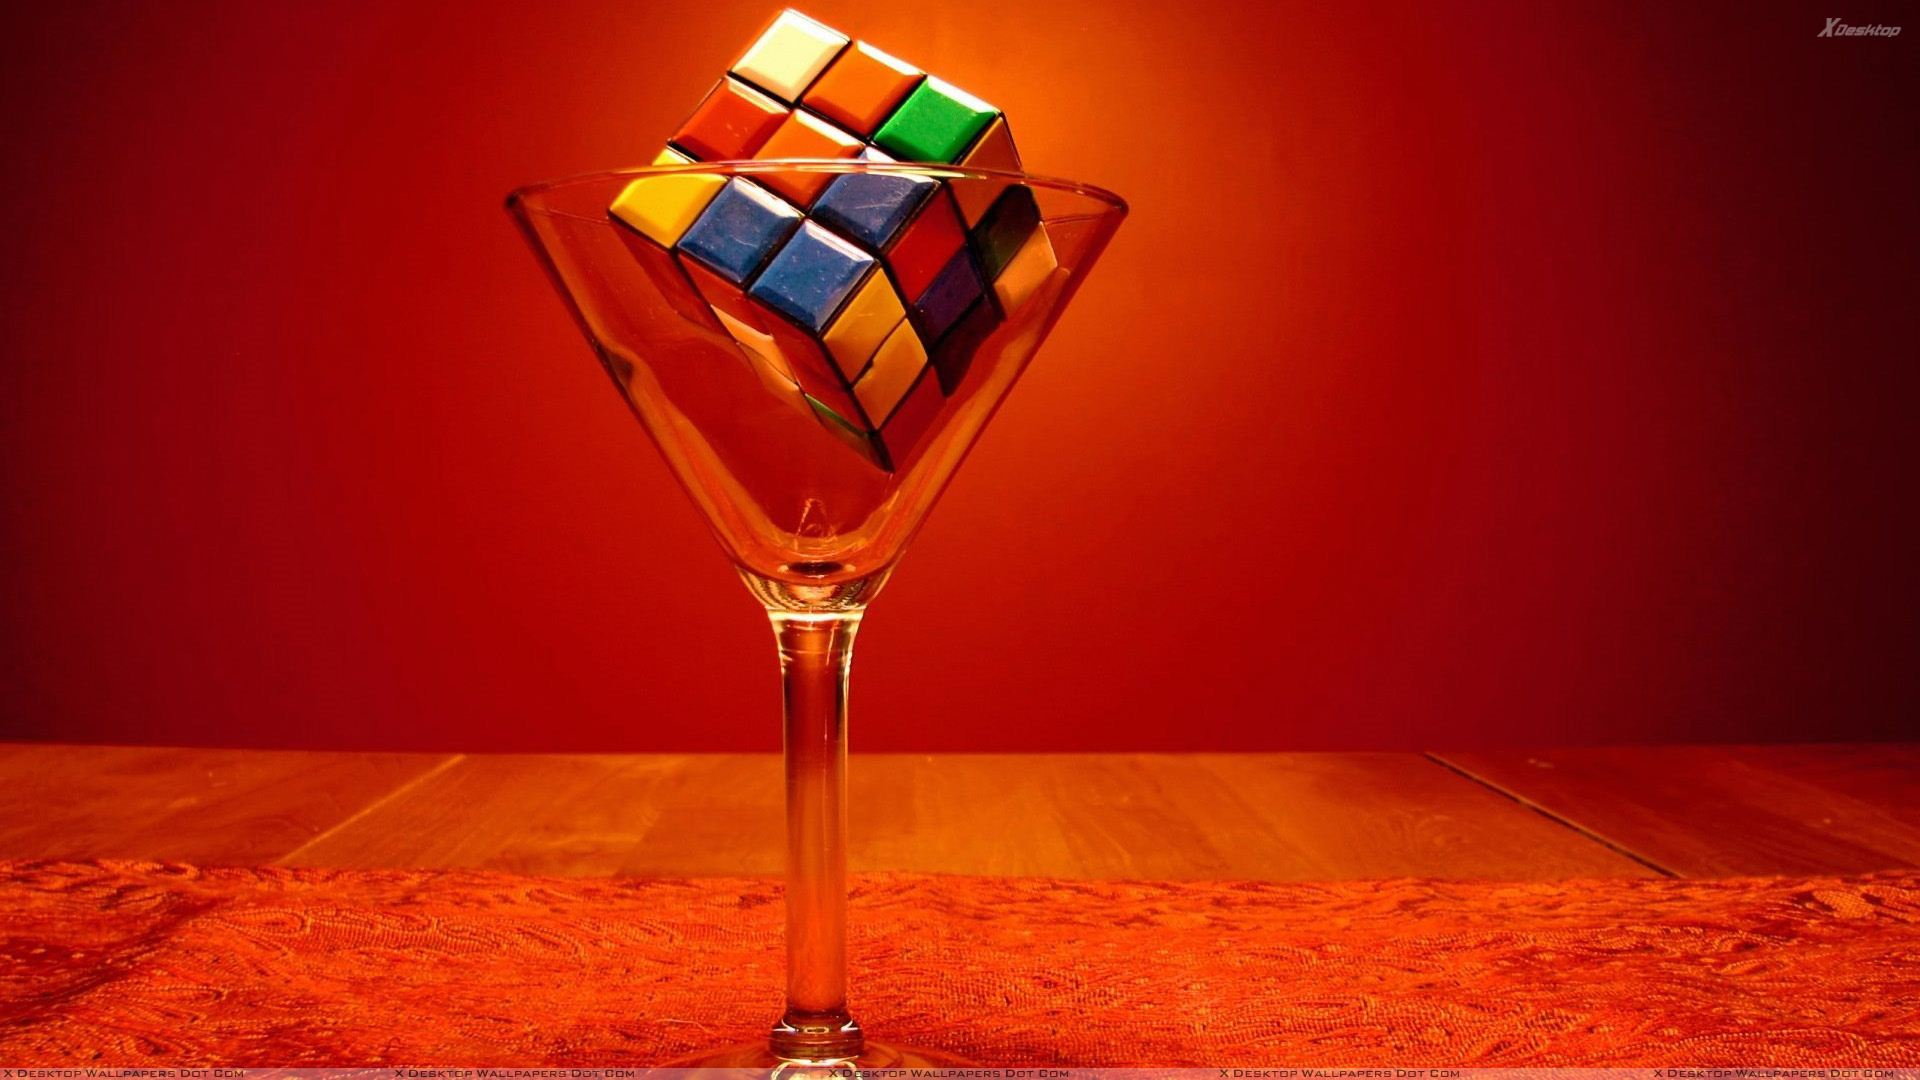 You Are Viewing Wallpaper Titled Colorful Puzzle